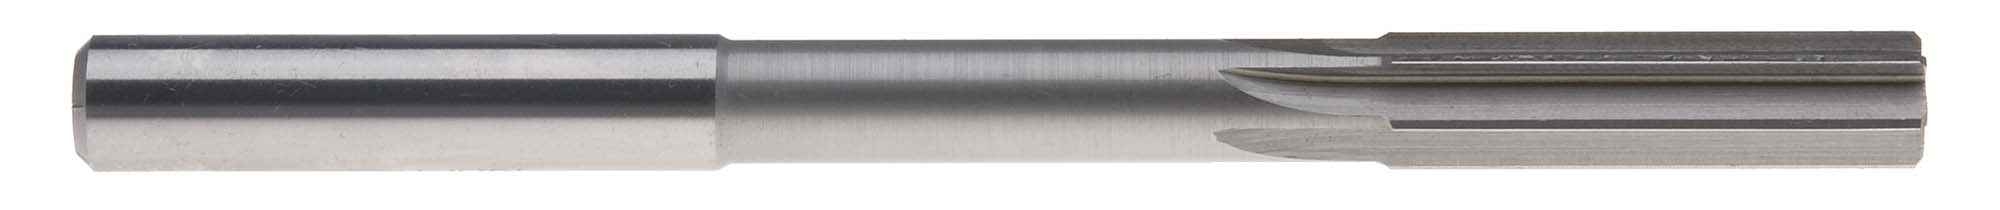 7.5mm Metric Chucking Reamer, High Speed Steel